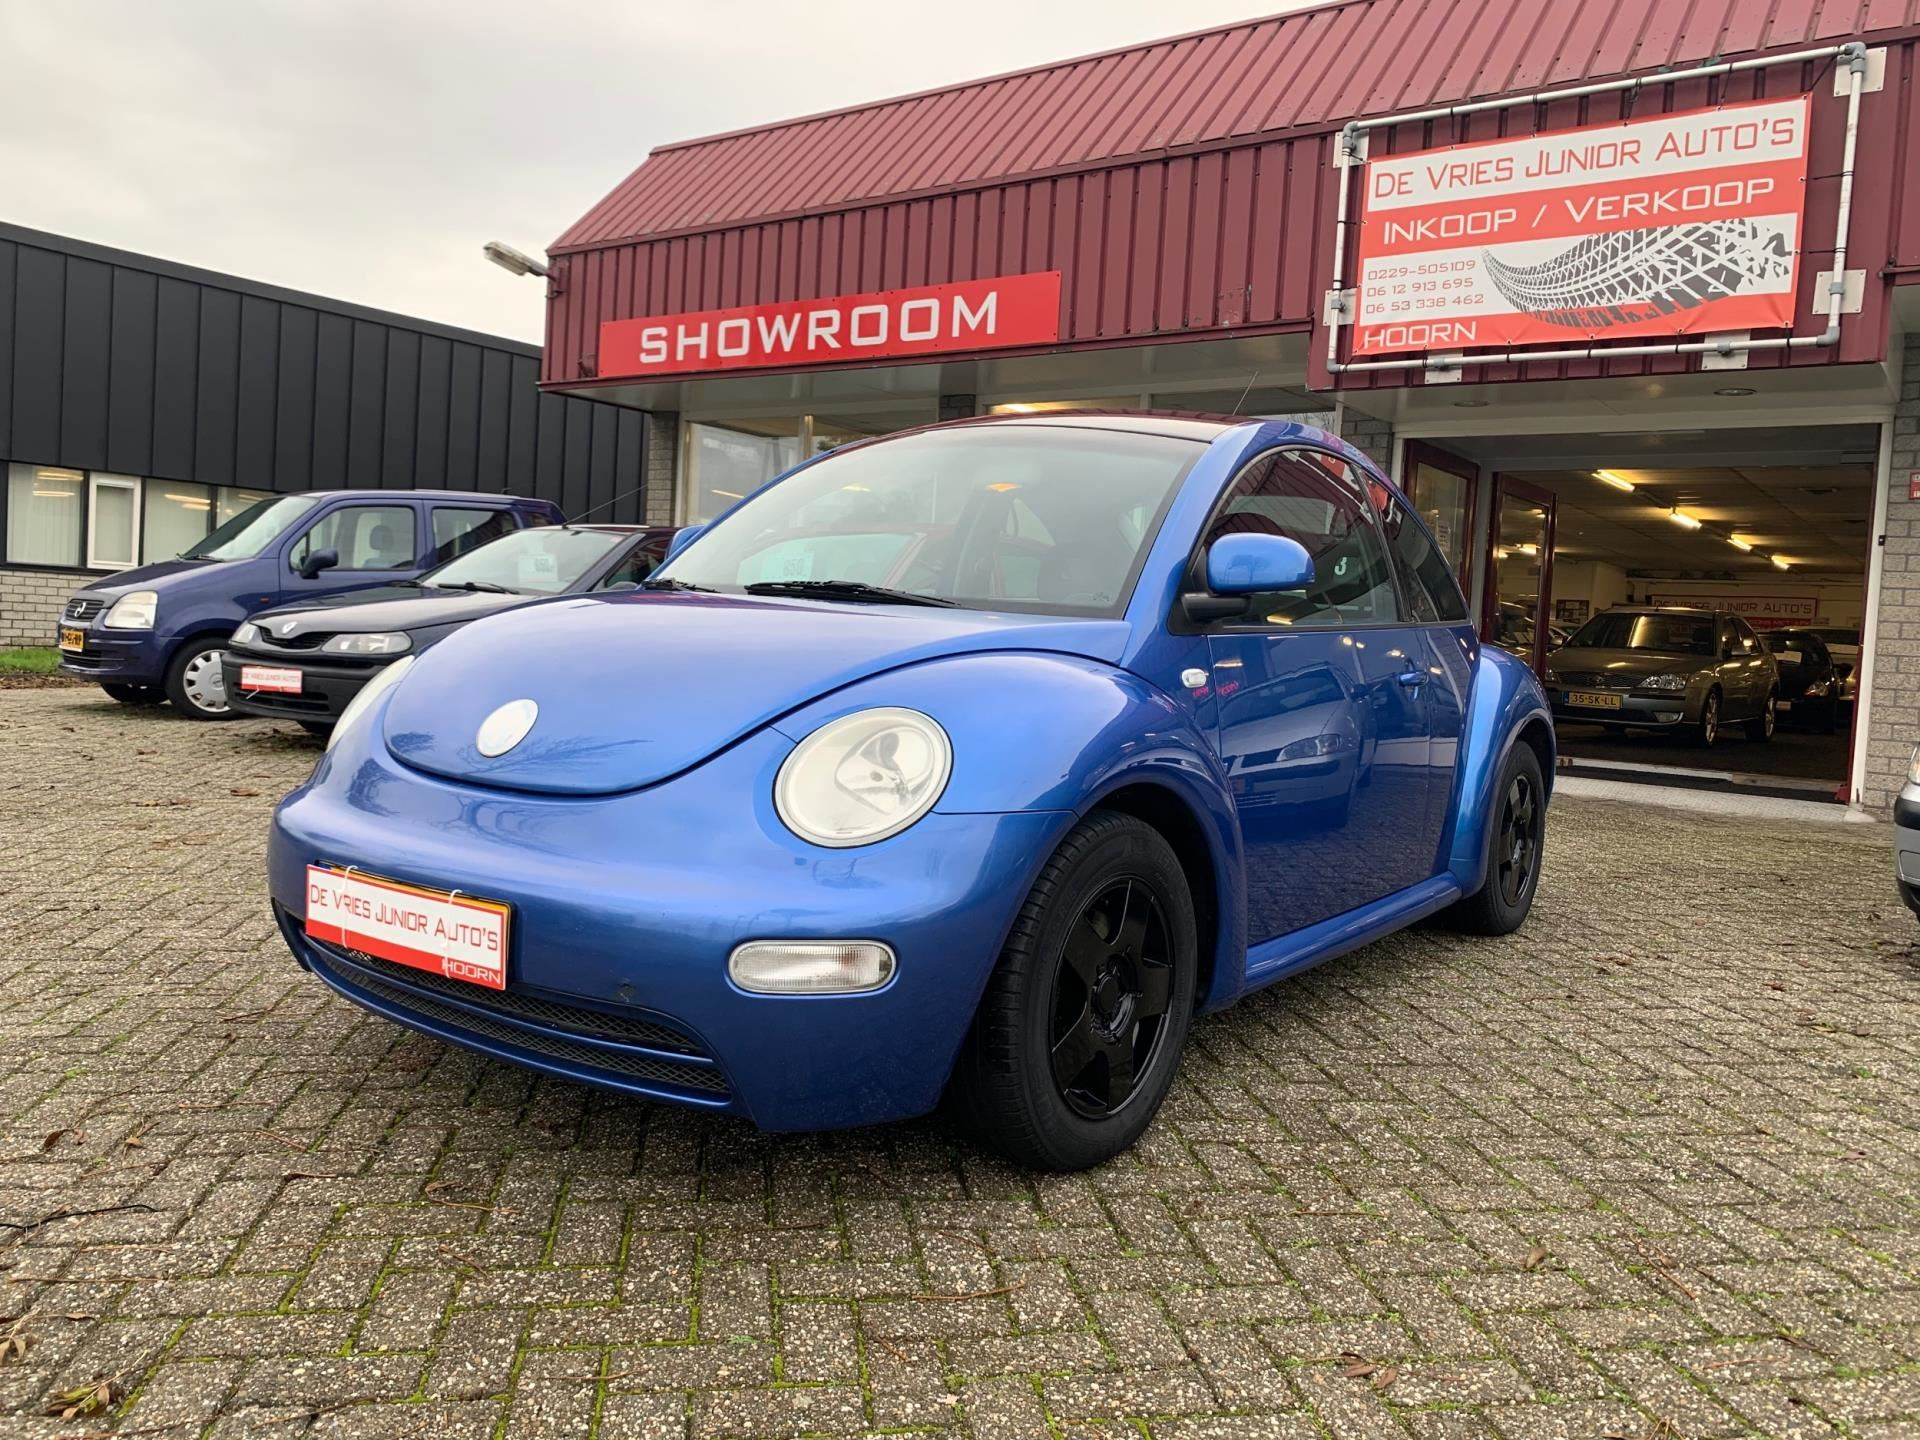 Volkswagen New Beetle occasion - De Vries Junior Auto's